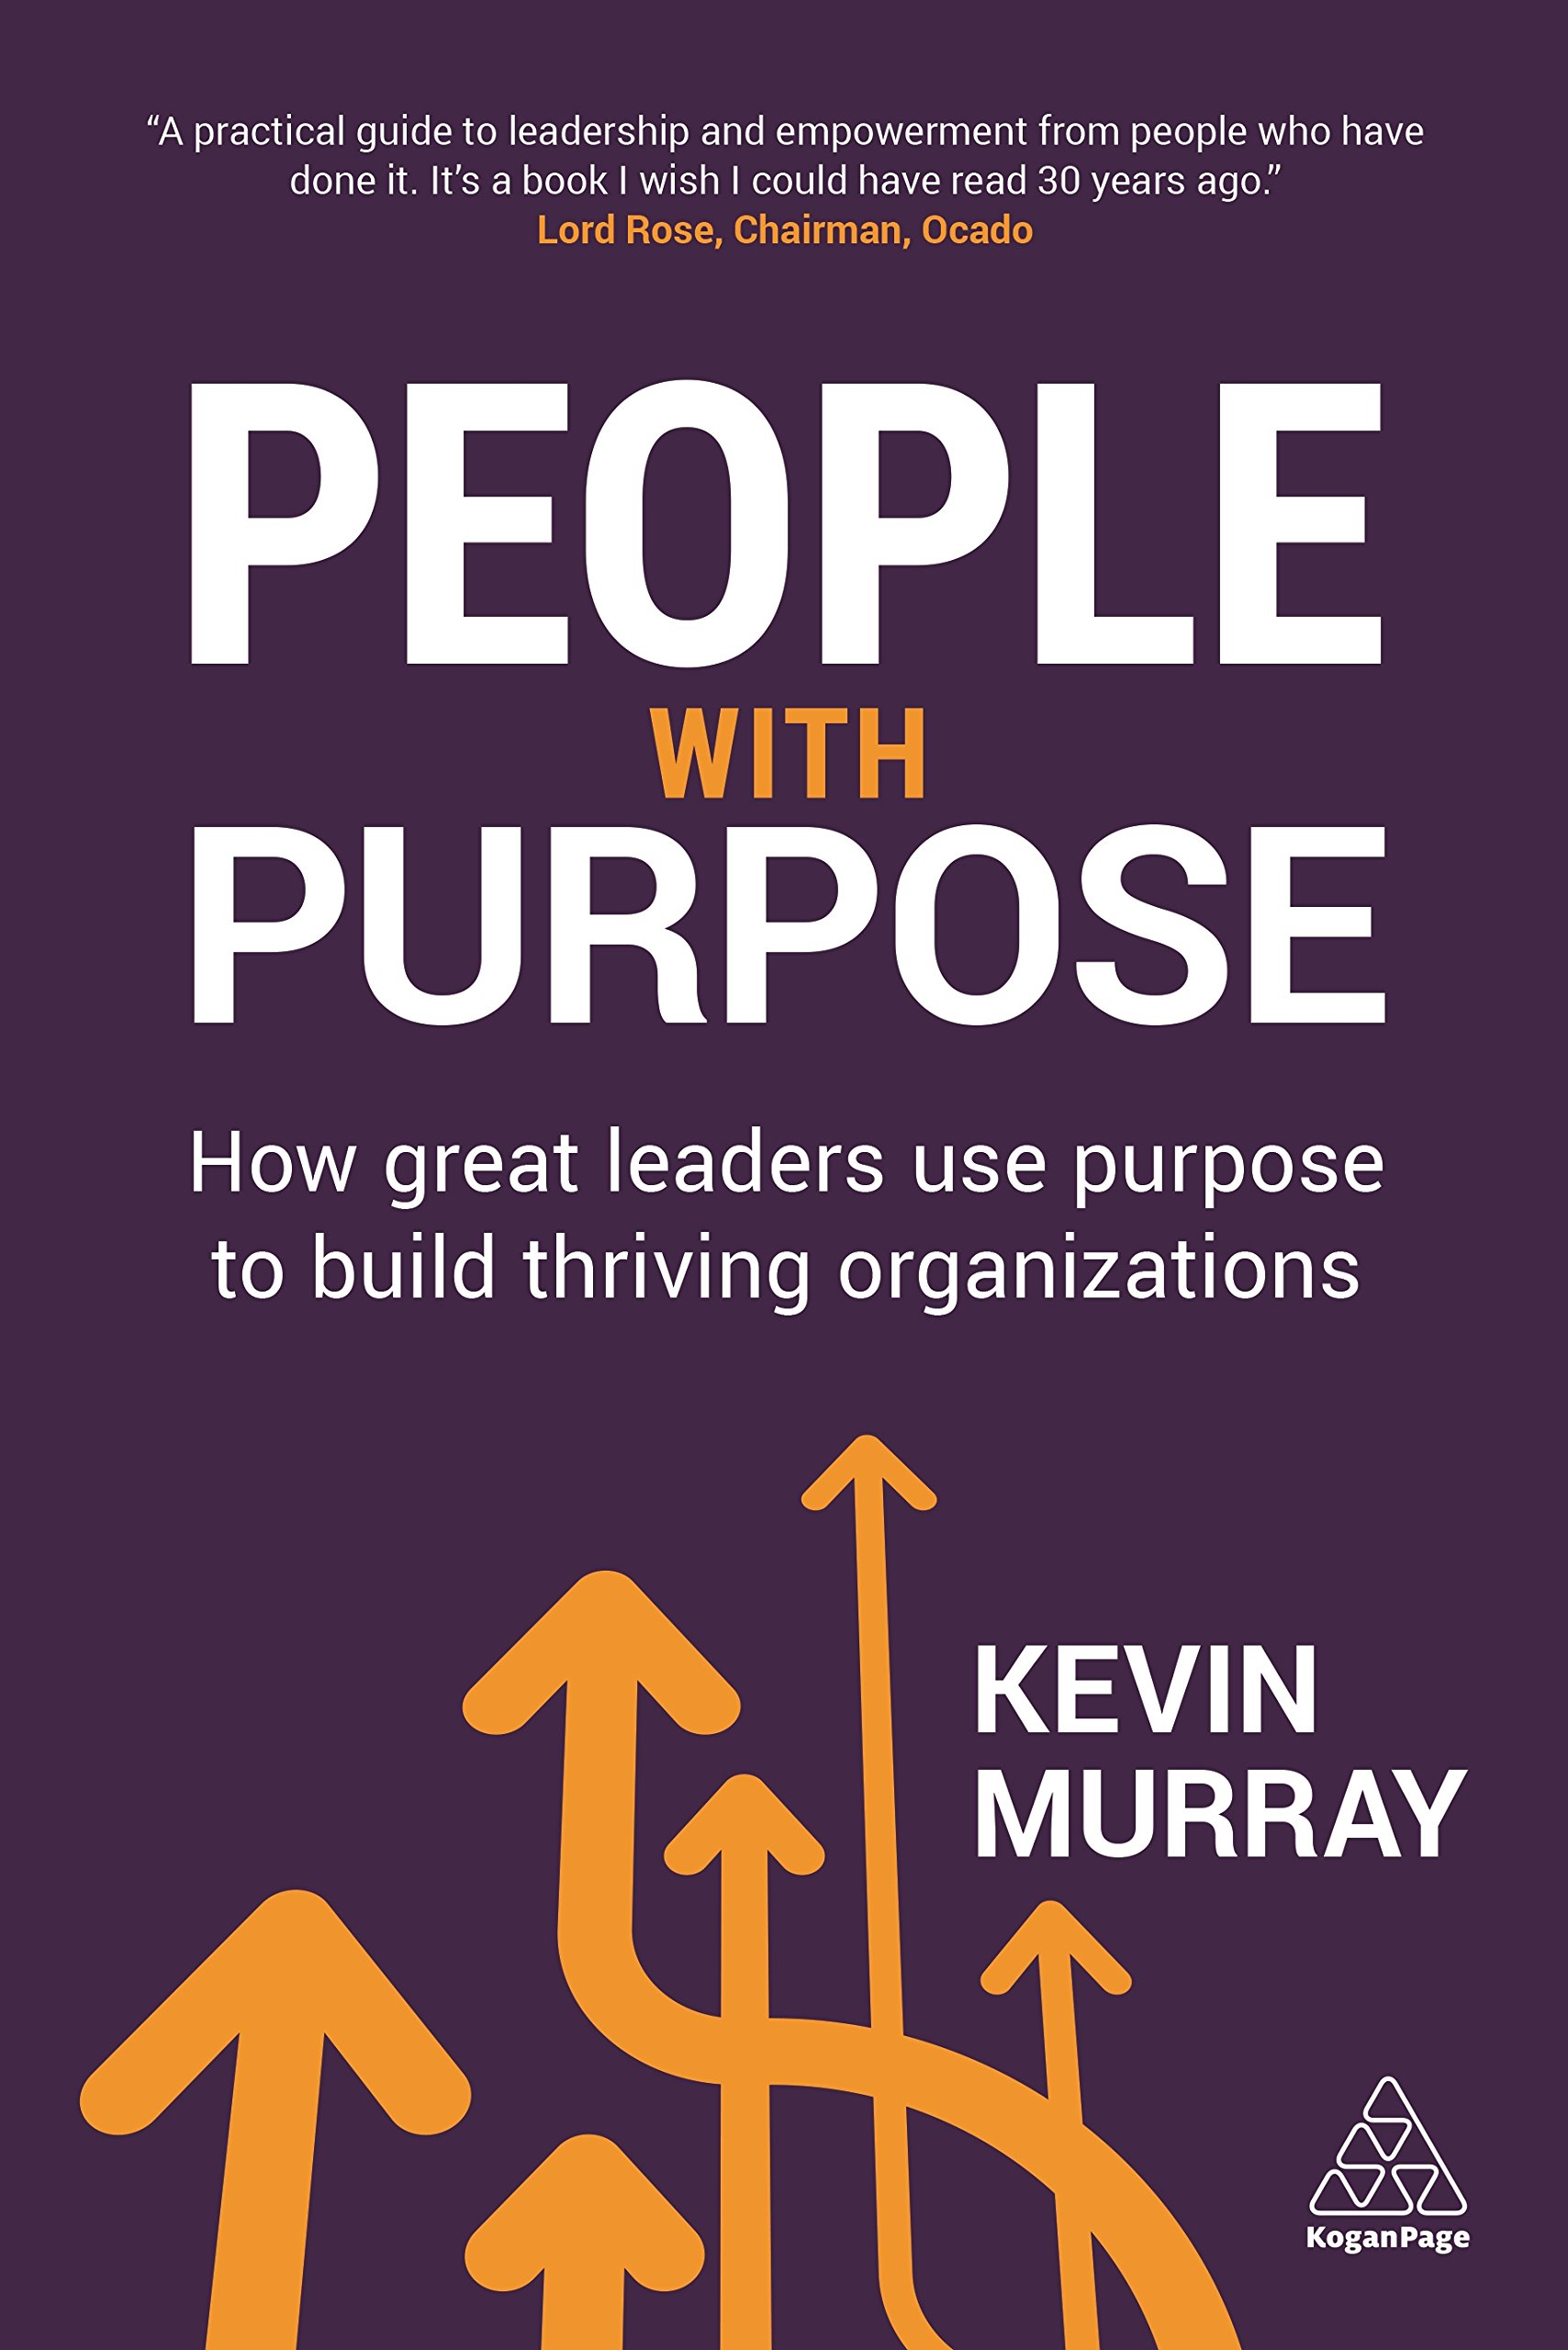 People with Purpose: How Great Leaders Use Purpose to Build Thriving Organizations pdf